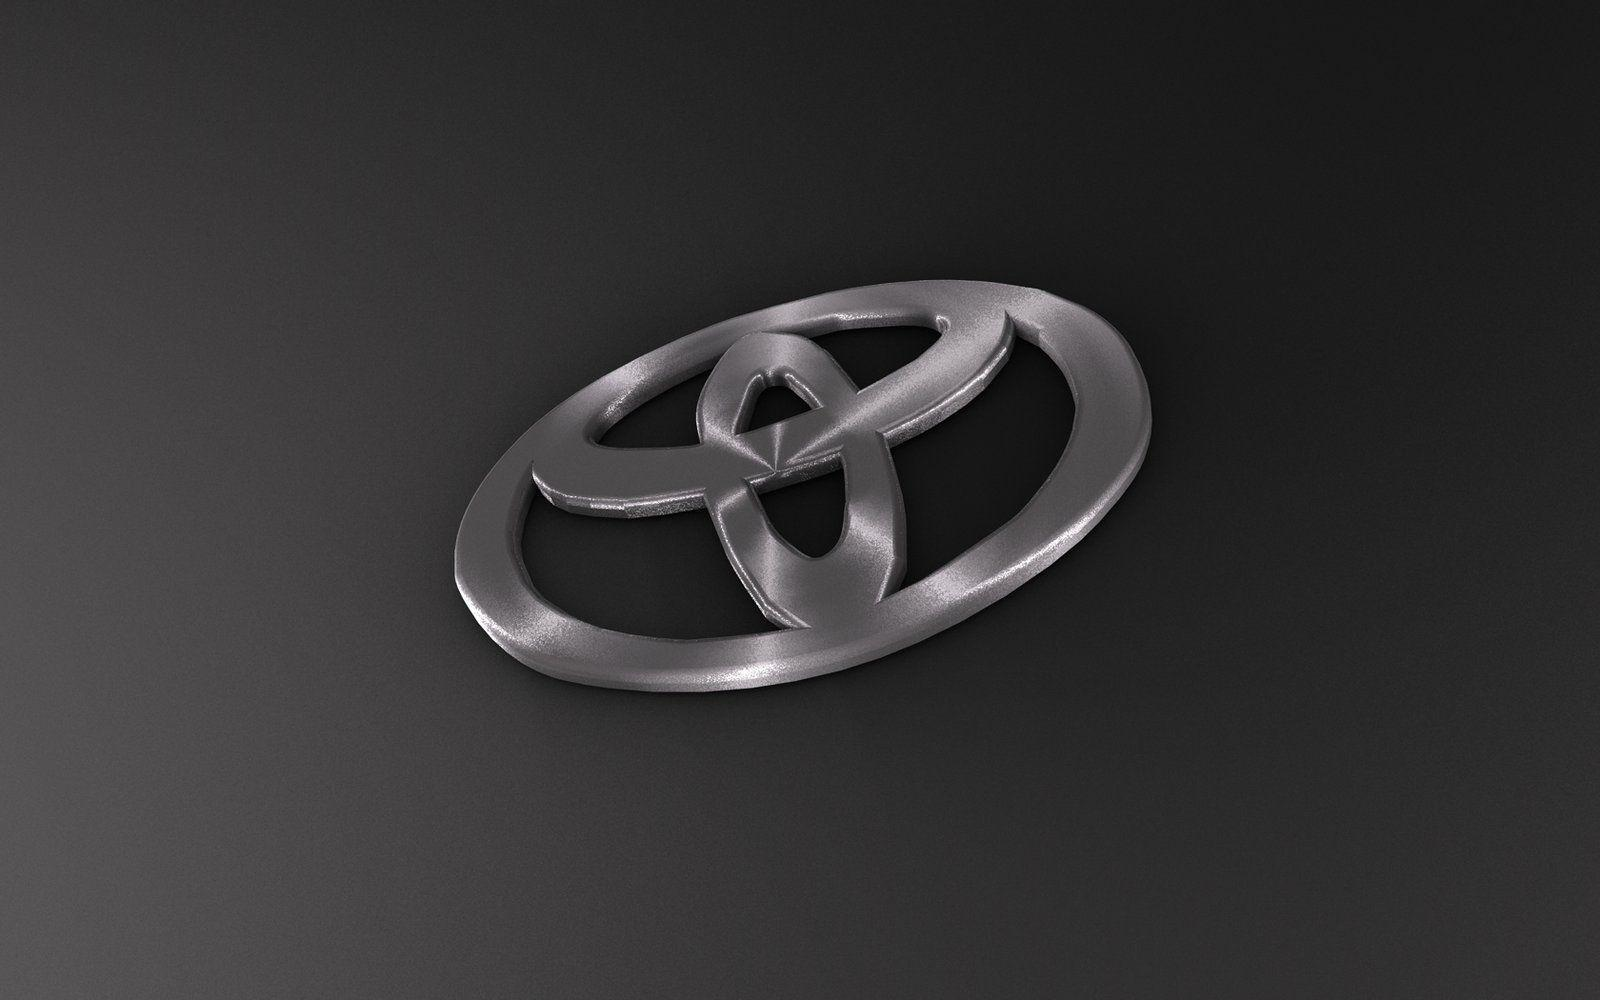 Toyota Logo Wallpaper - Free Download Wallpaper from wallpaperate.com